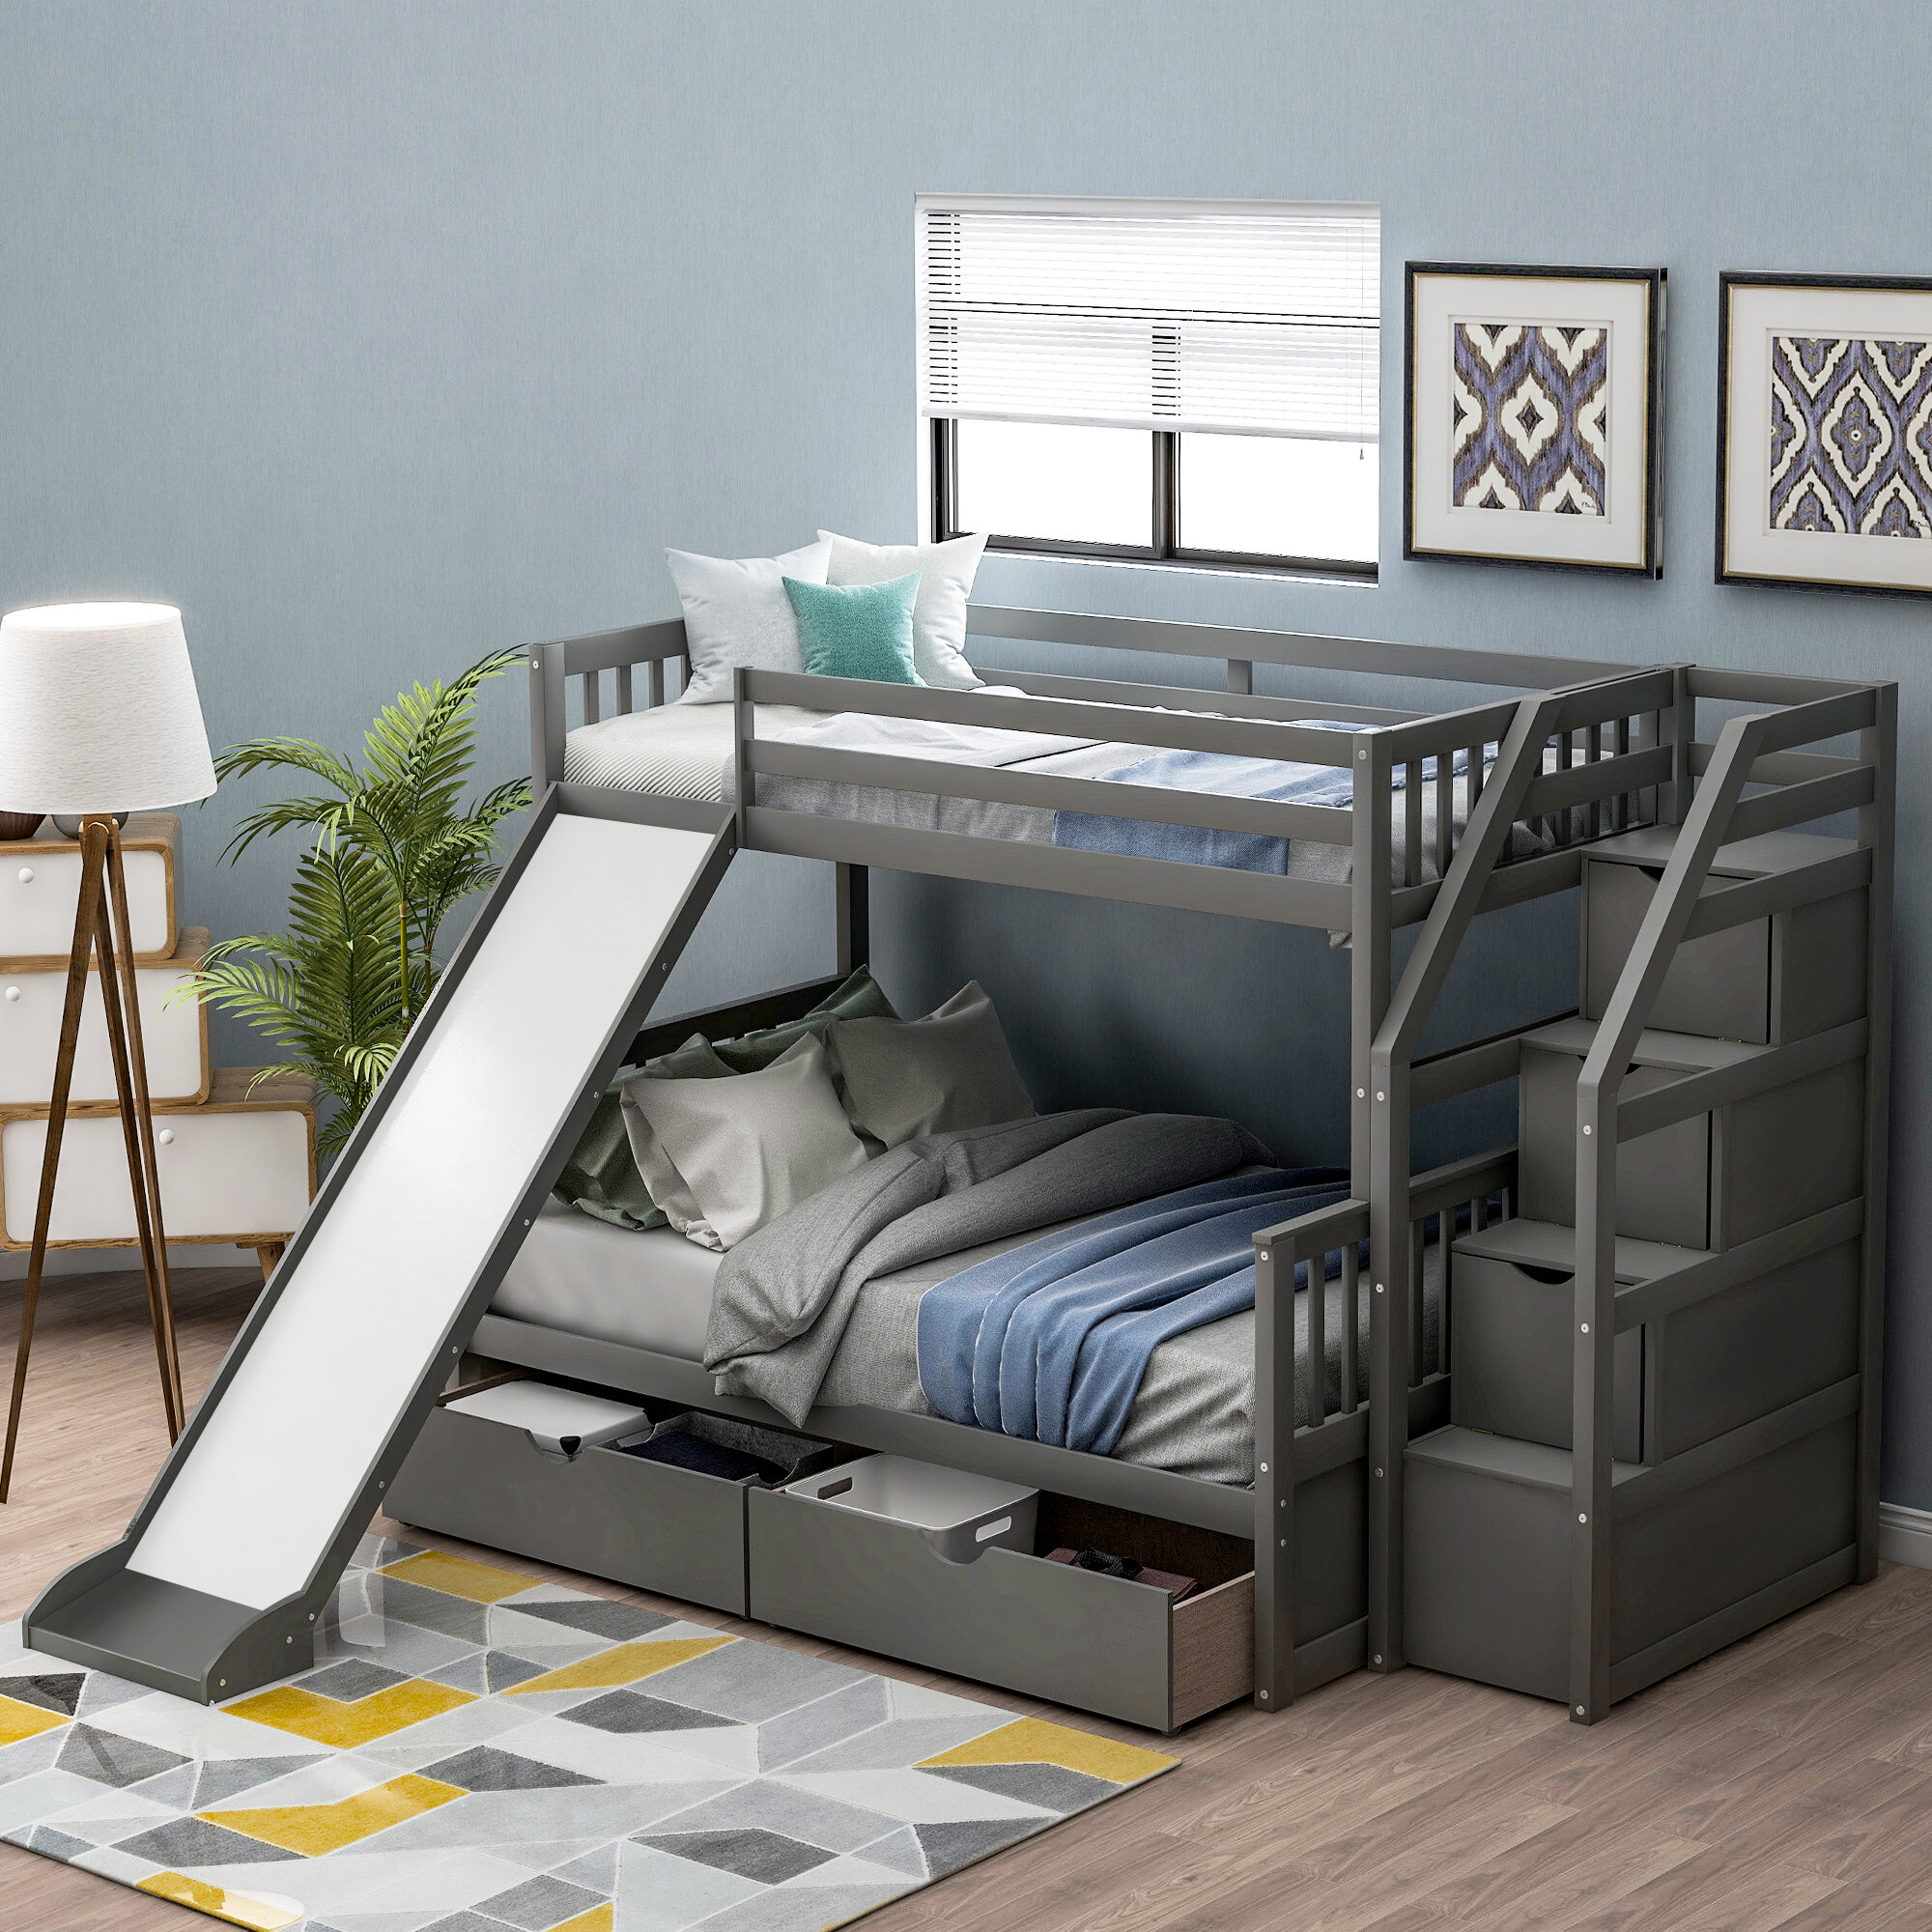 Isabelle Max Alydar Twin Over Full Bunk Bed With With 2 Drawers Reviews Wayfair